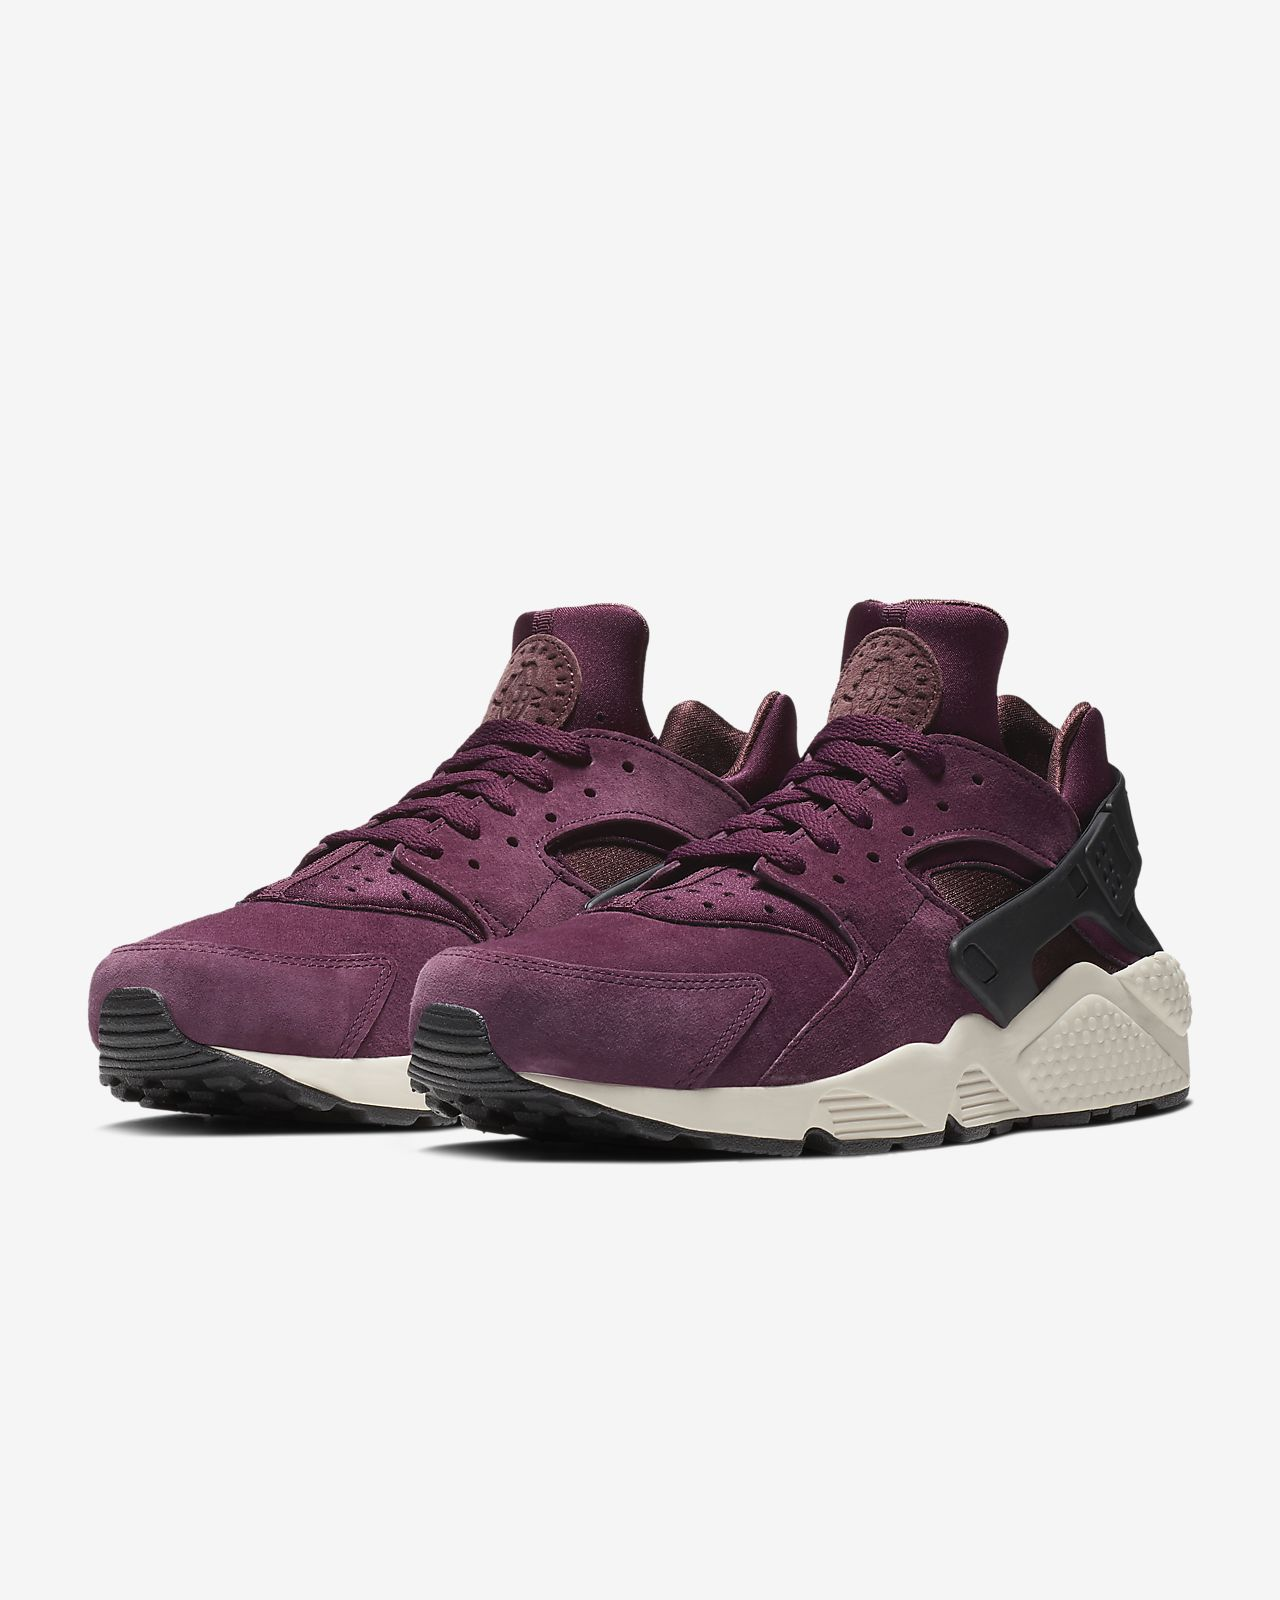 d26bb4e3ede0 Nike Air Huarache Premium Men s Shoe. Nike.com